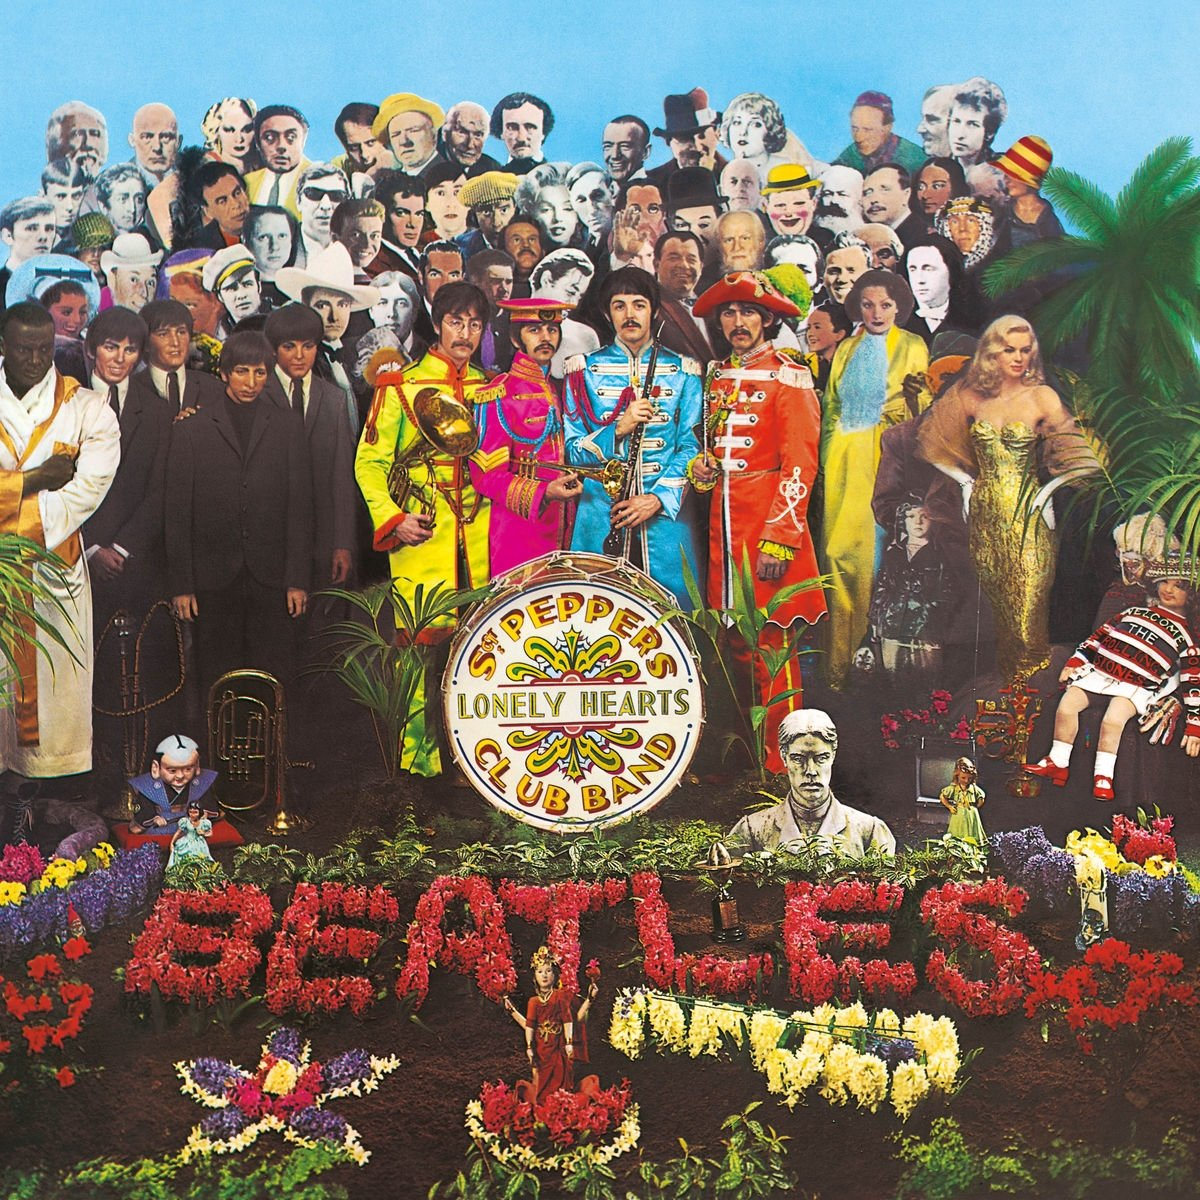 Sgt. Pepper's Lonely Hearts Club Band [LP][2017 Stereo Mix] by Capitol